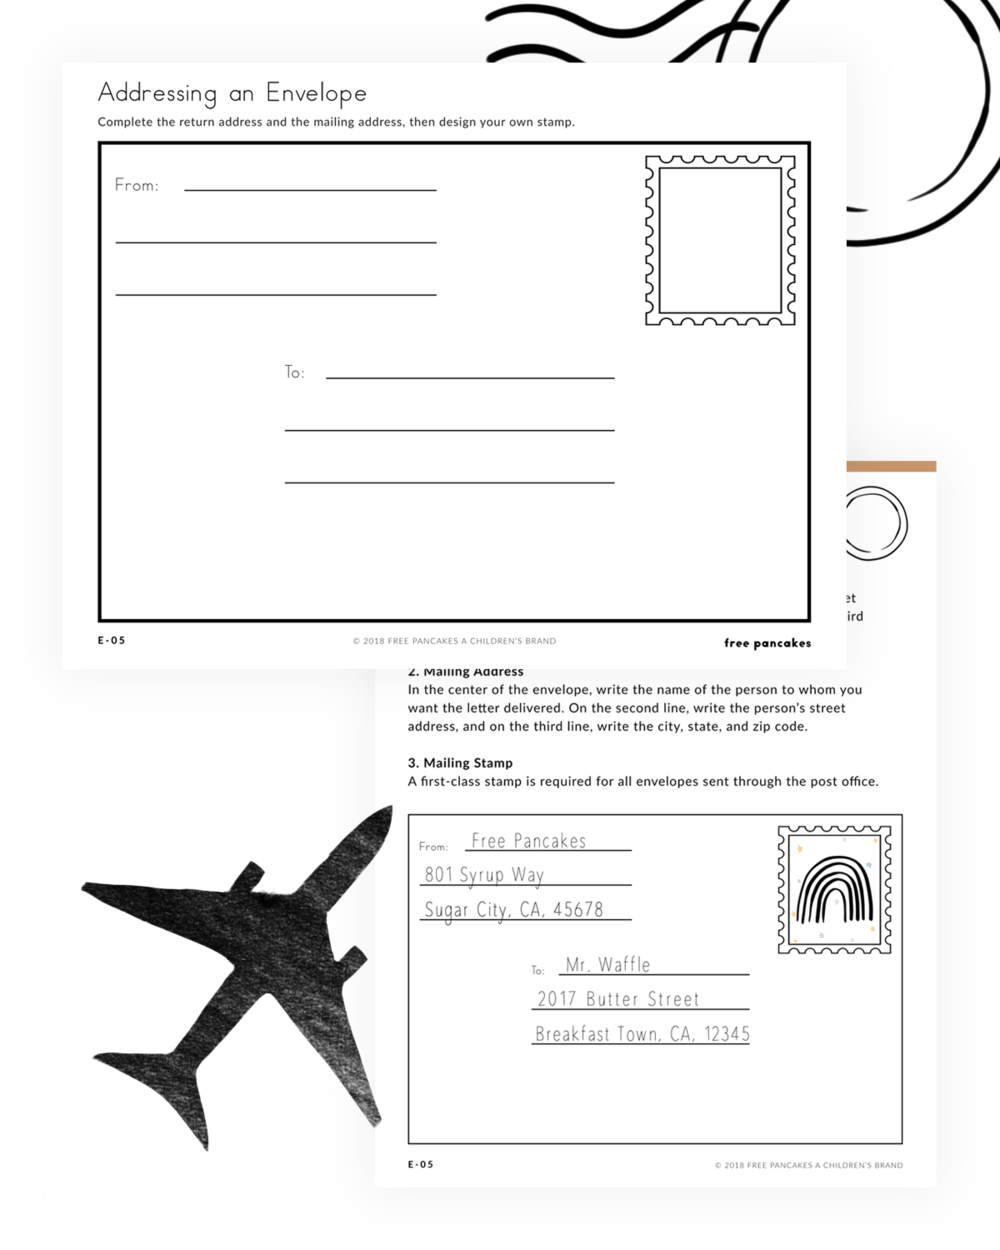 How To Address An Envelope Activity For Kids Addressing Envelopes Letter Formation Printable Activities For Kids [ 1250 x 1000 Pixel ]